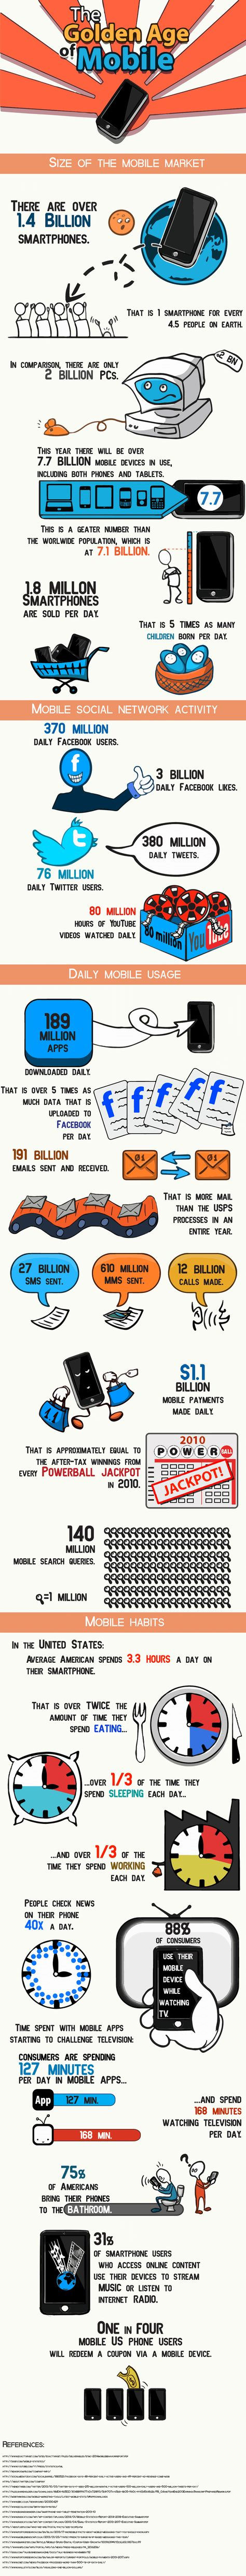 Social Media, Internet, SMS, Apps - Incredible Smartphone Stats, Facts & Figures [INFOGRAPHIC]